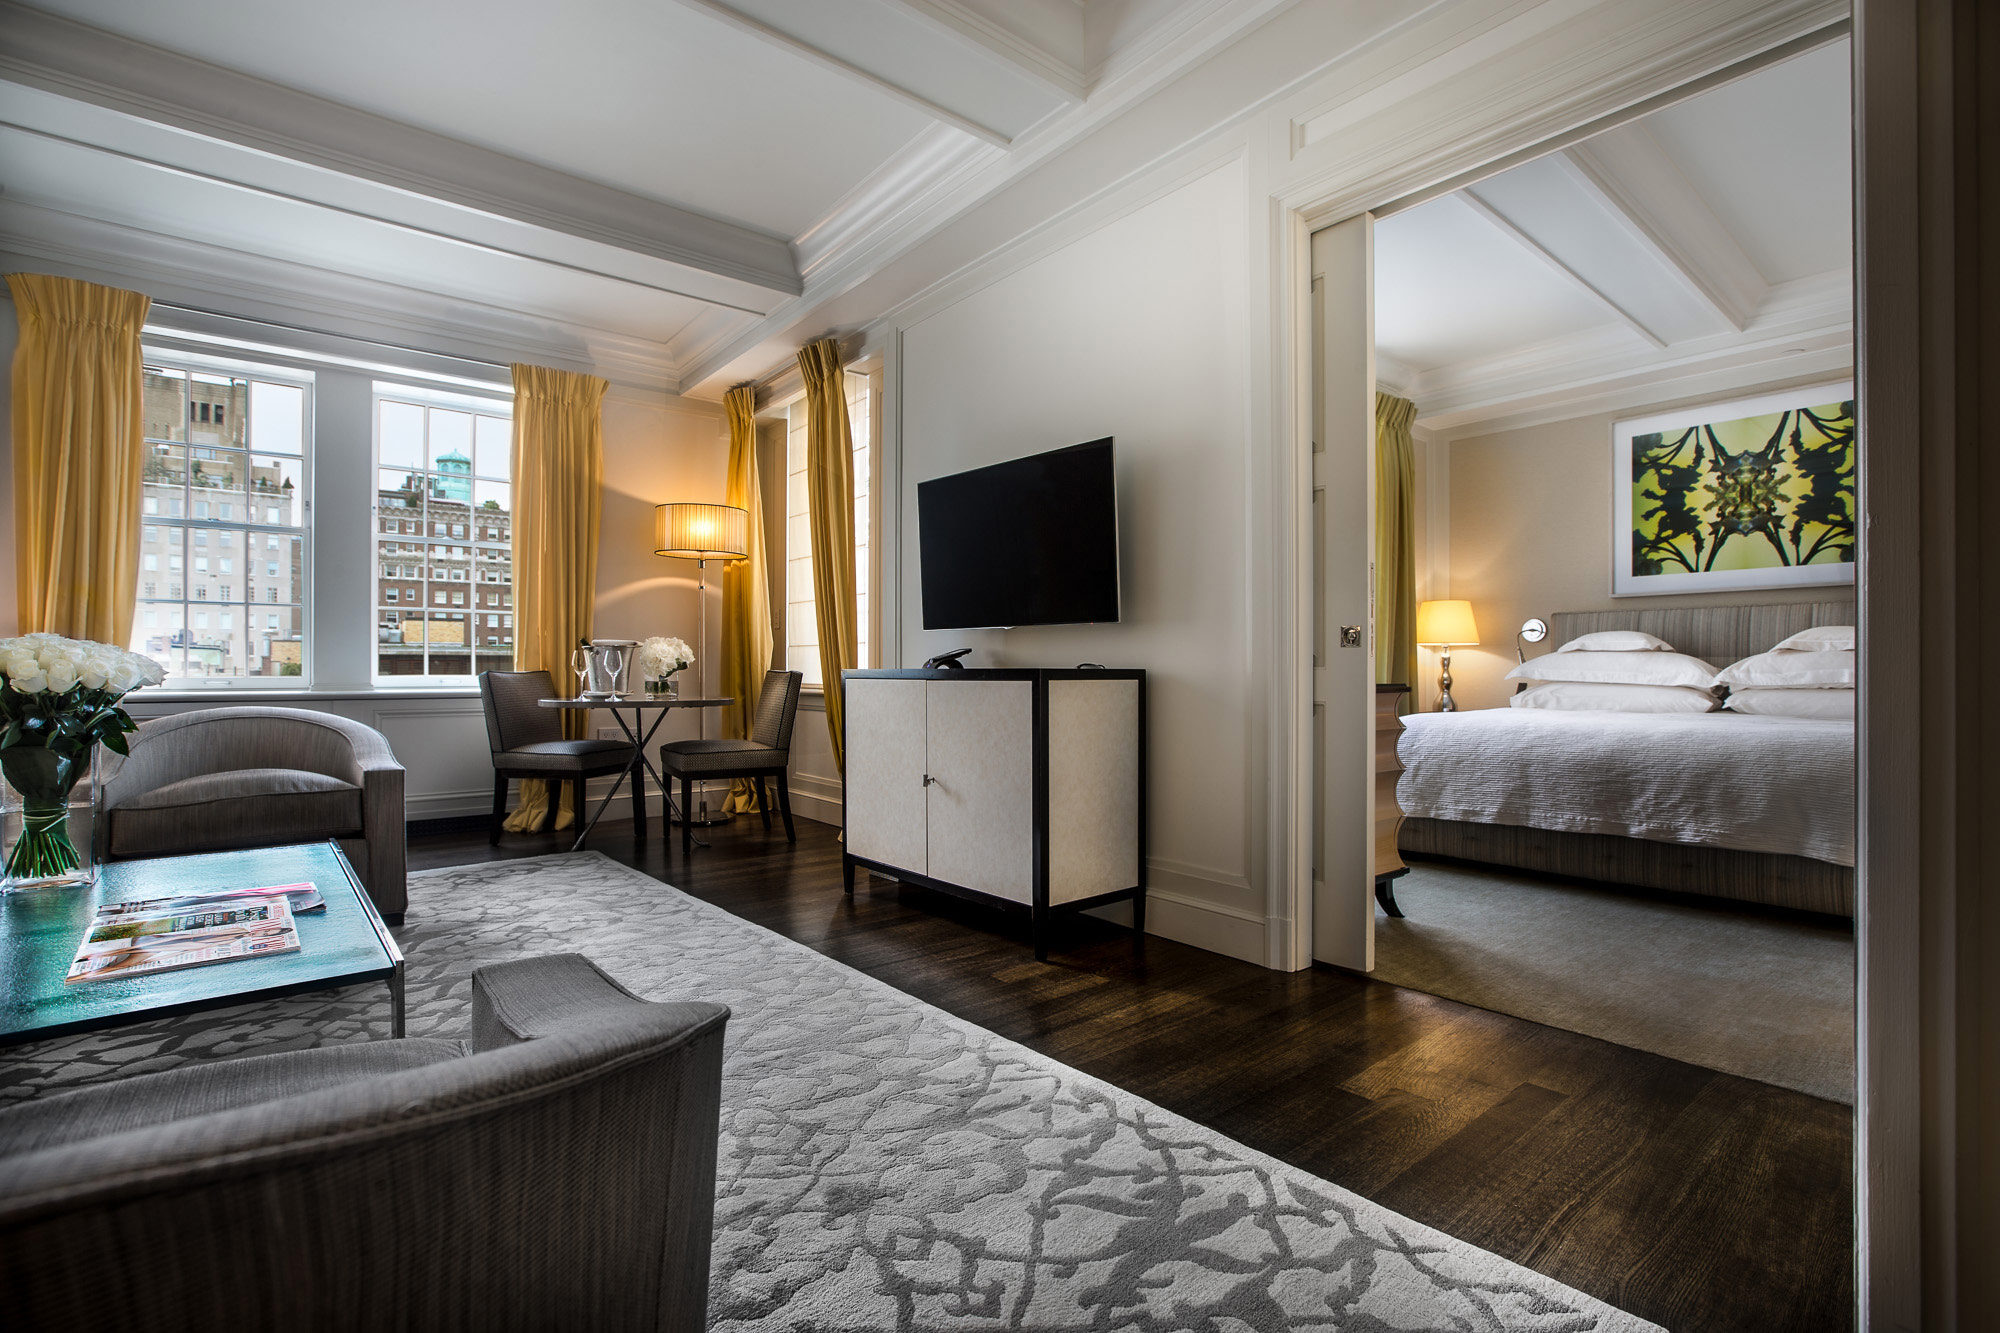 Luxury Four Bedroom Hotel Suite In Nyc The Mark Hotel